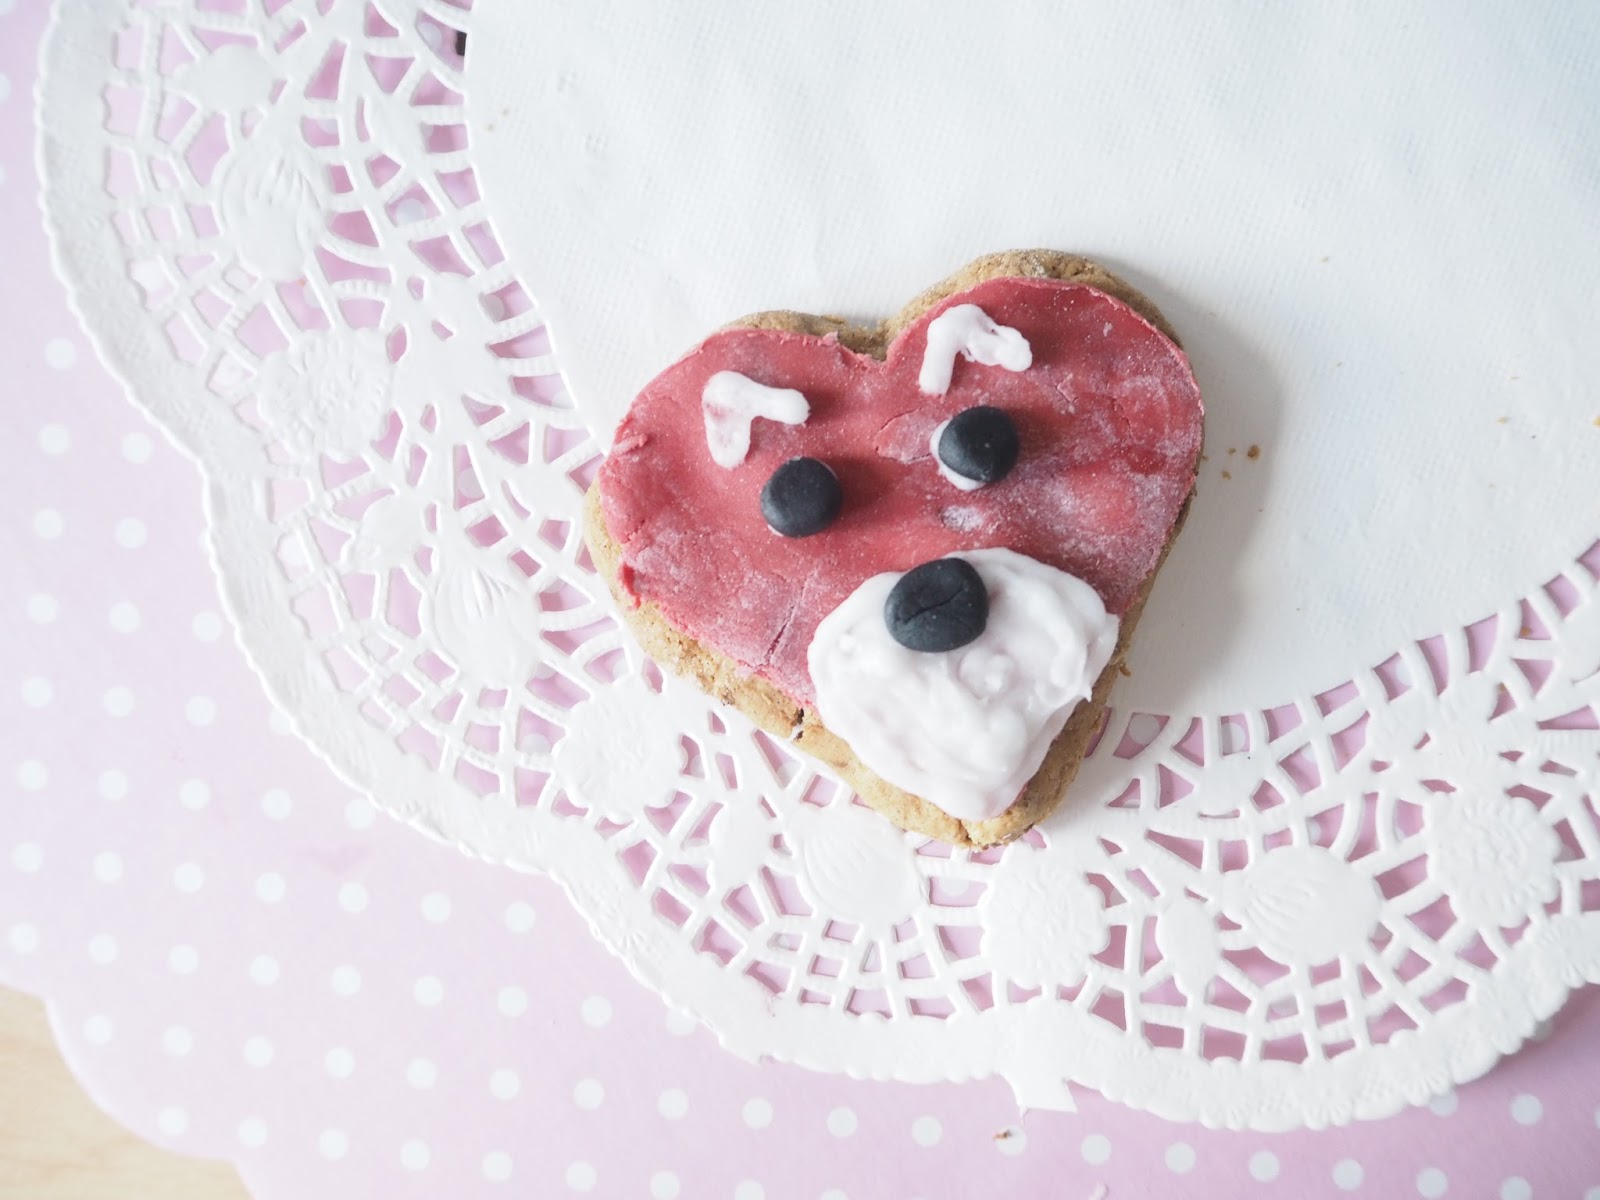 bearcookies, cutecookies